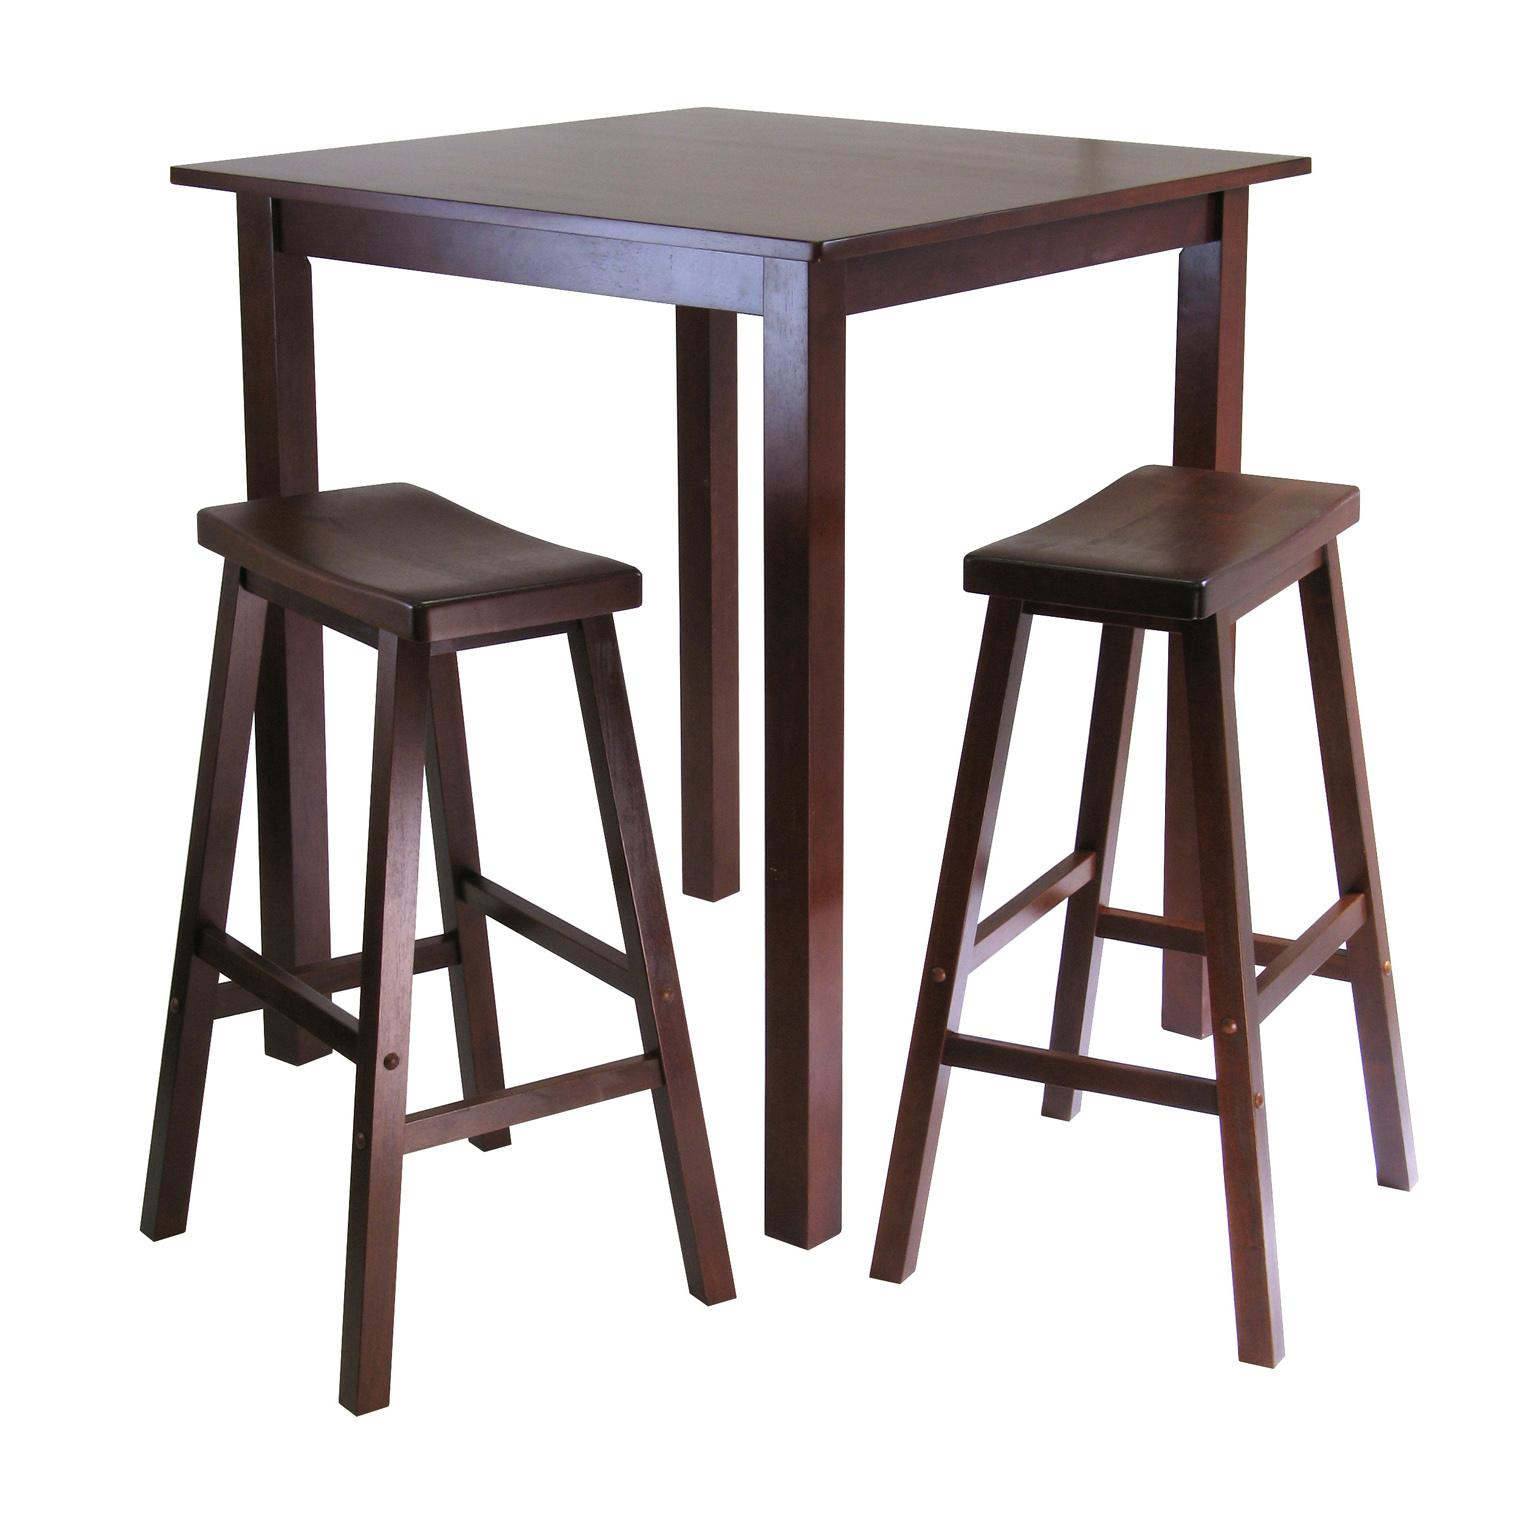 View larger  sc 1 st  Amazon.com : pub bar table set - pezcame.com